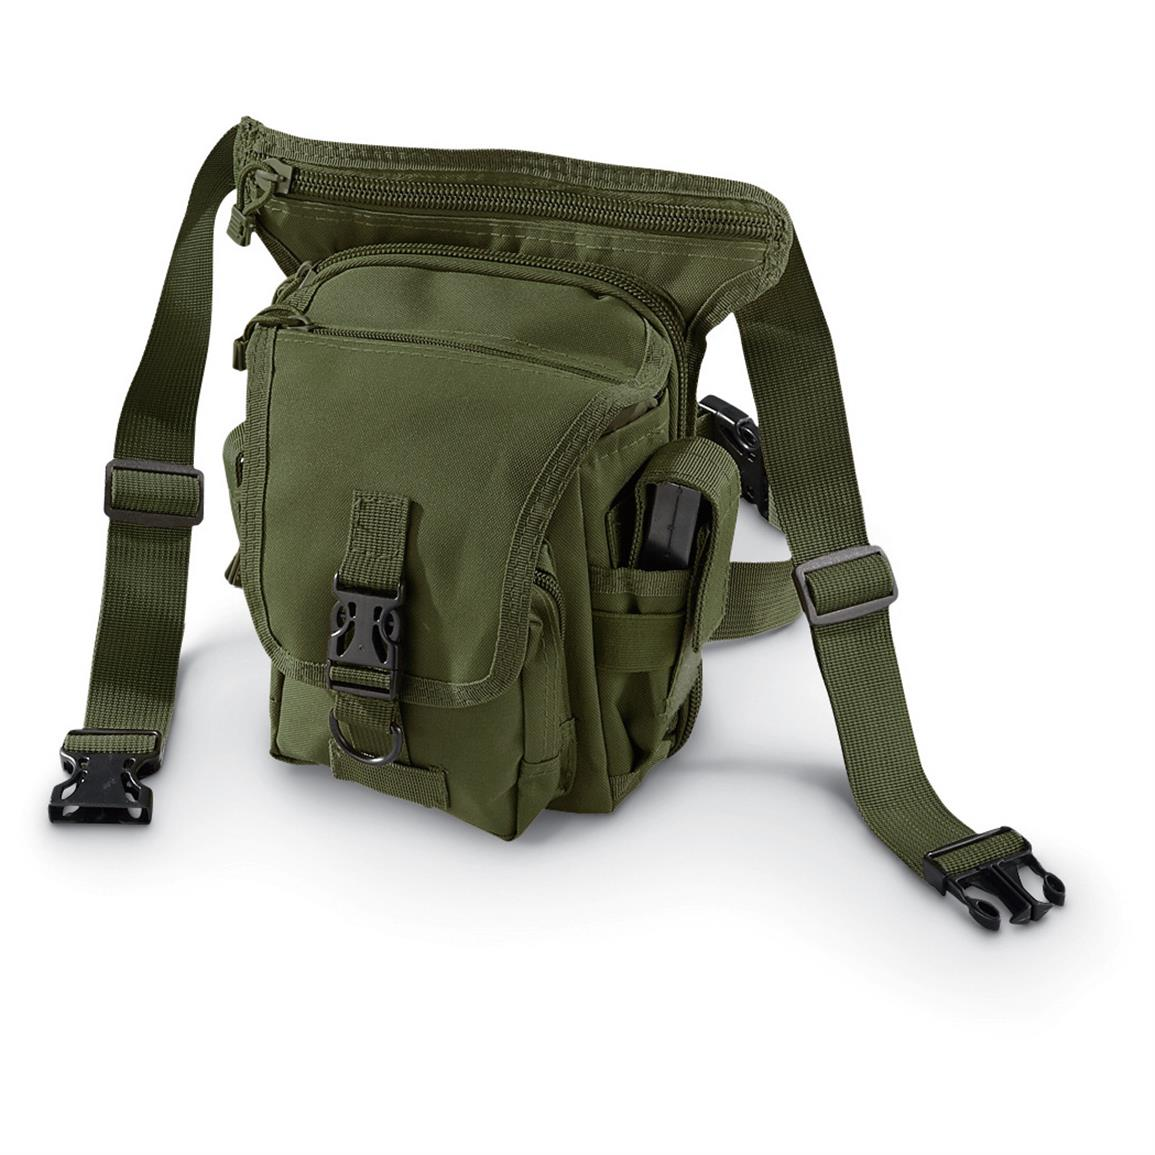 Cactus Jack Tactical Hip Pouch, Olive Drab